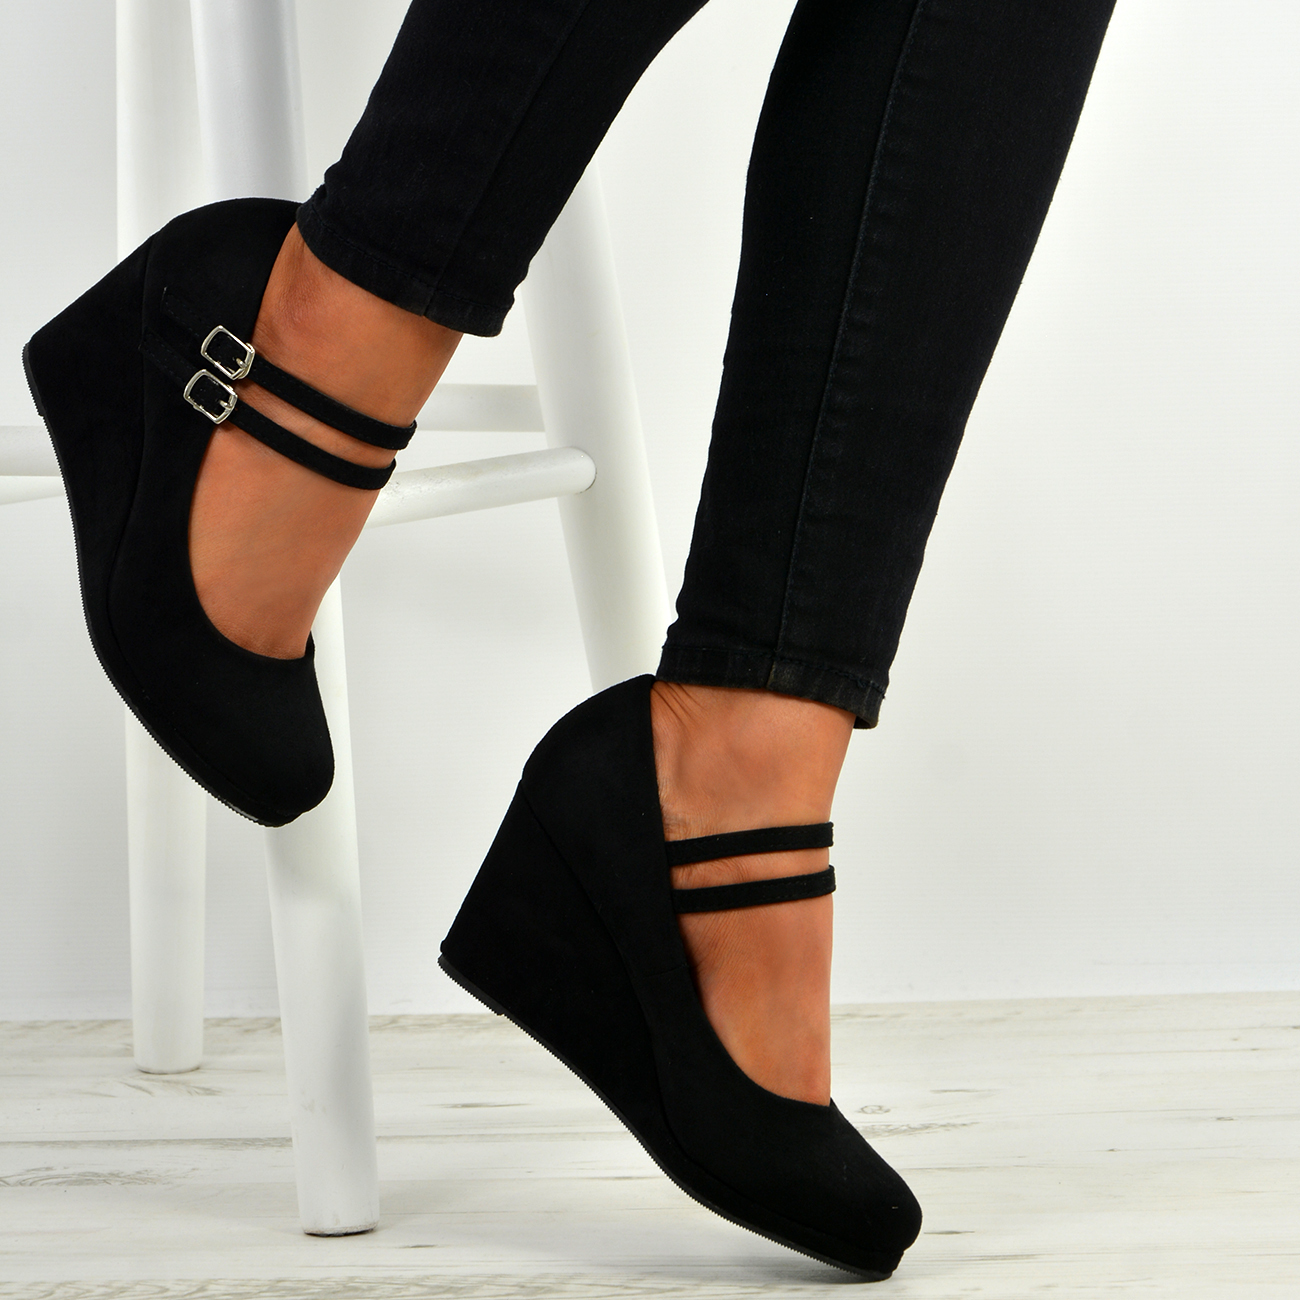 dd1ad3f9f4 Womens Ladies High Wedge Heel Pumps Platform Double Strap Shoes Size ...